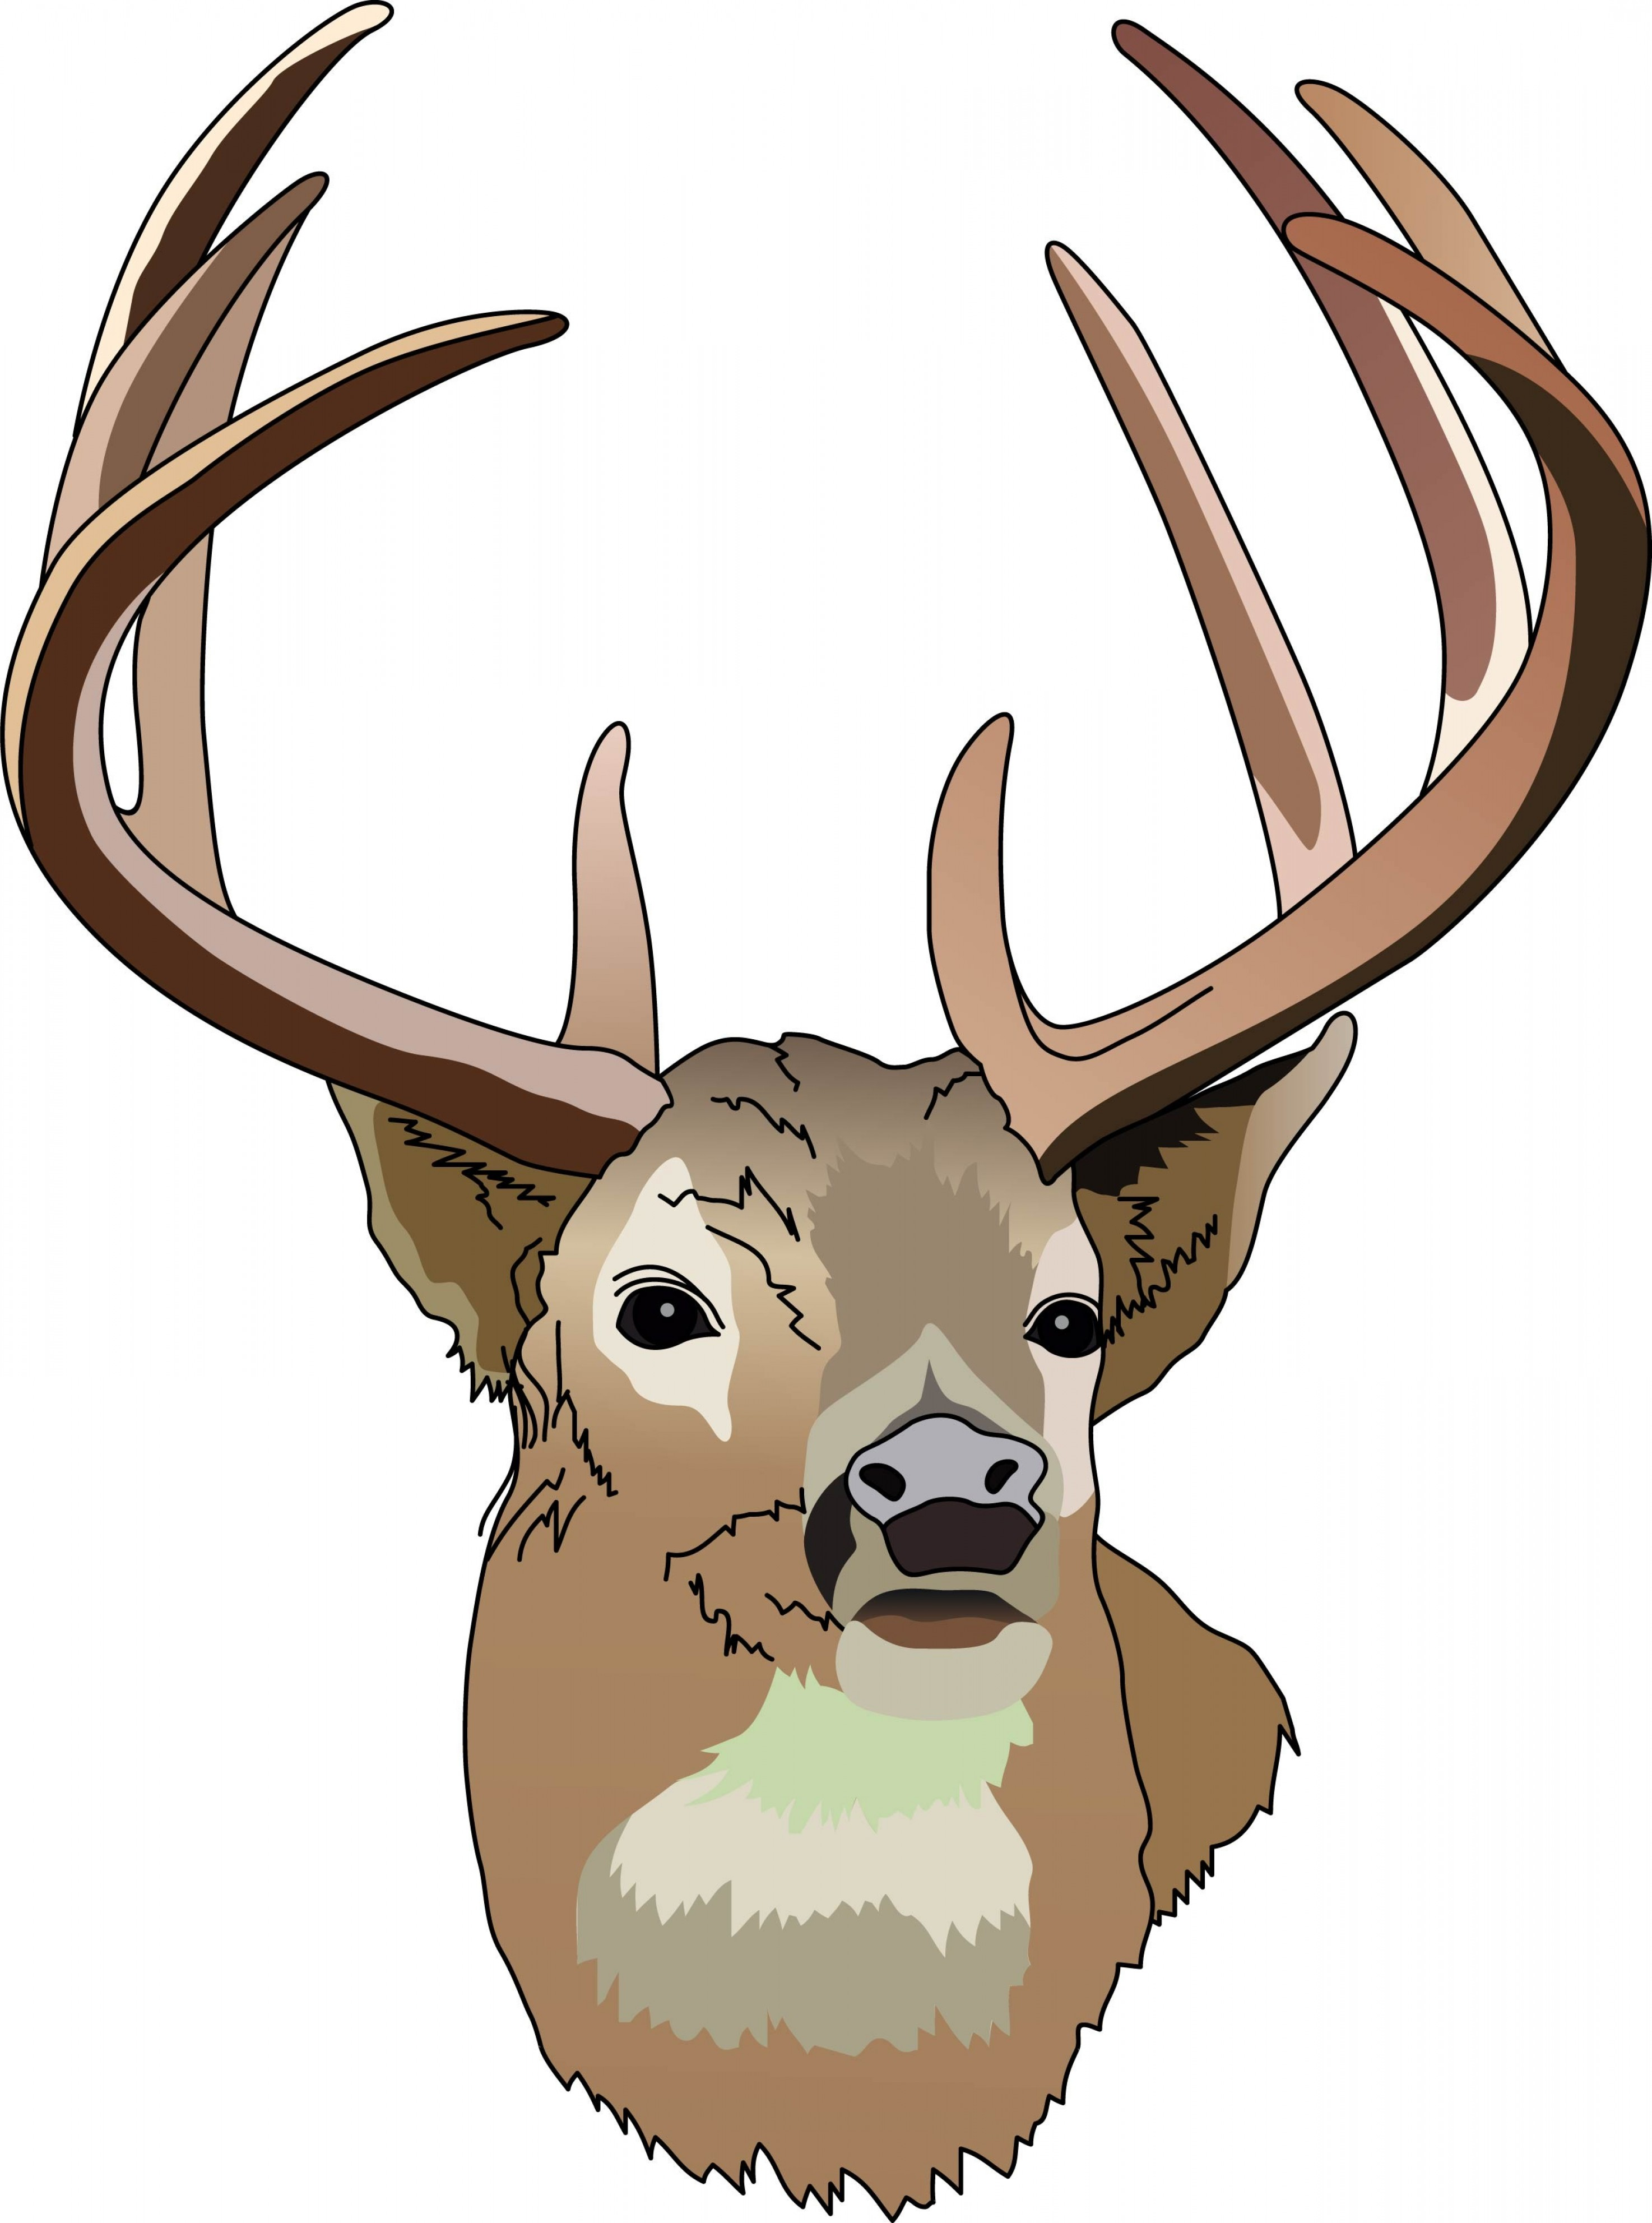 Best White Tail Deer Hunting Vector Image.